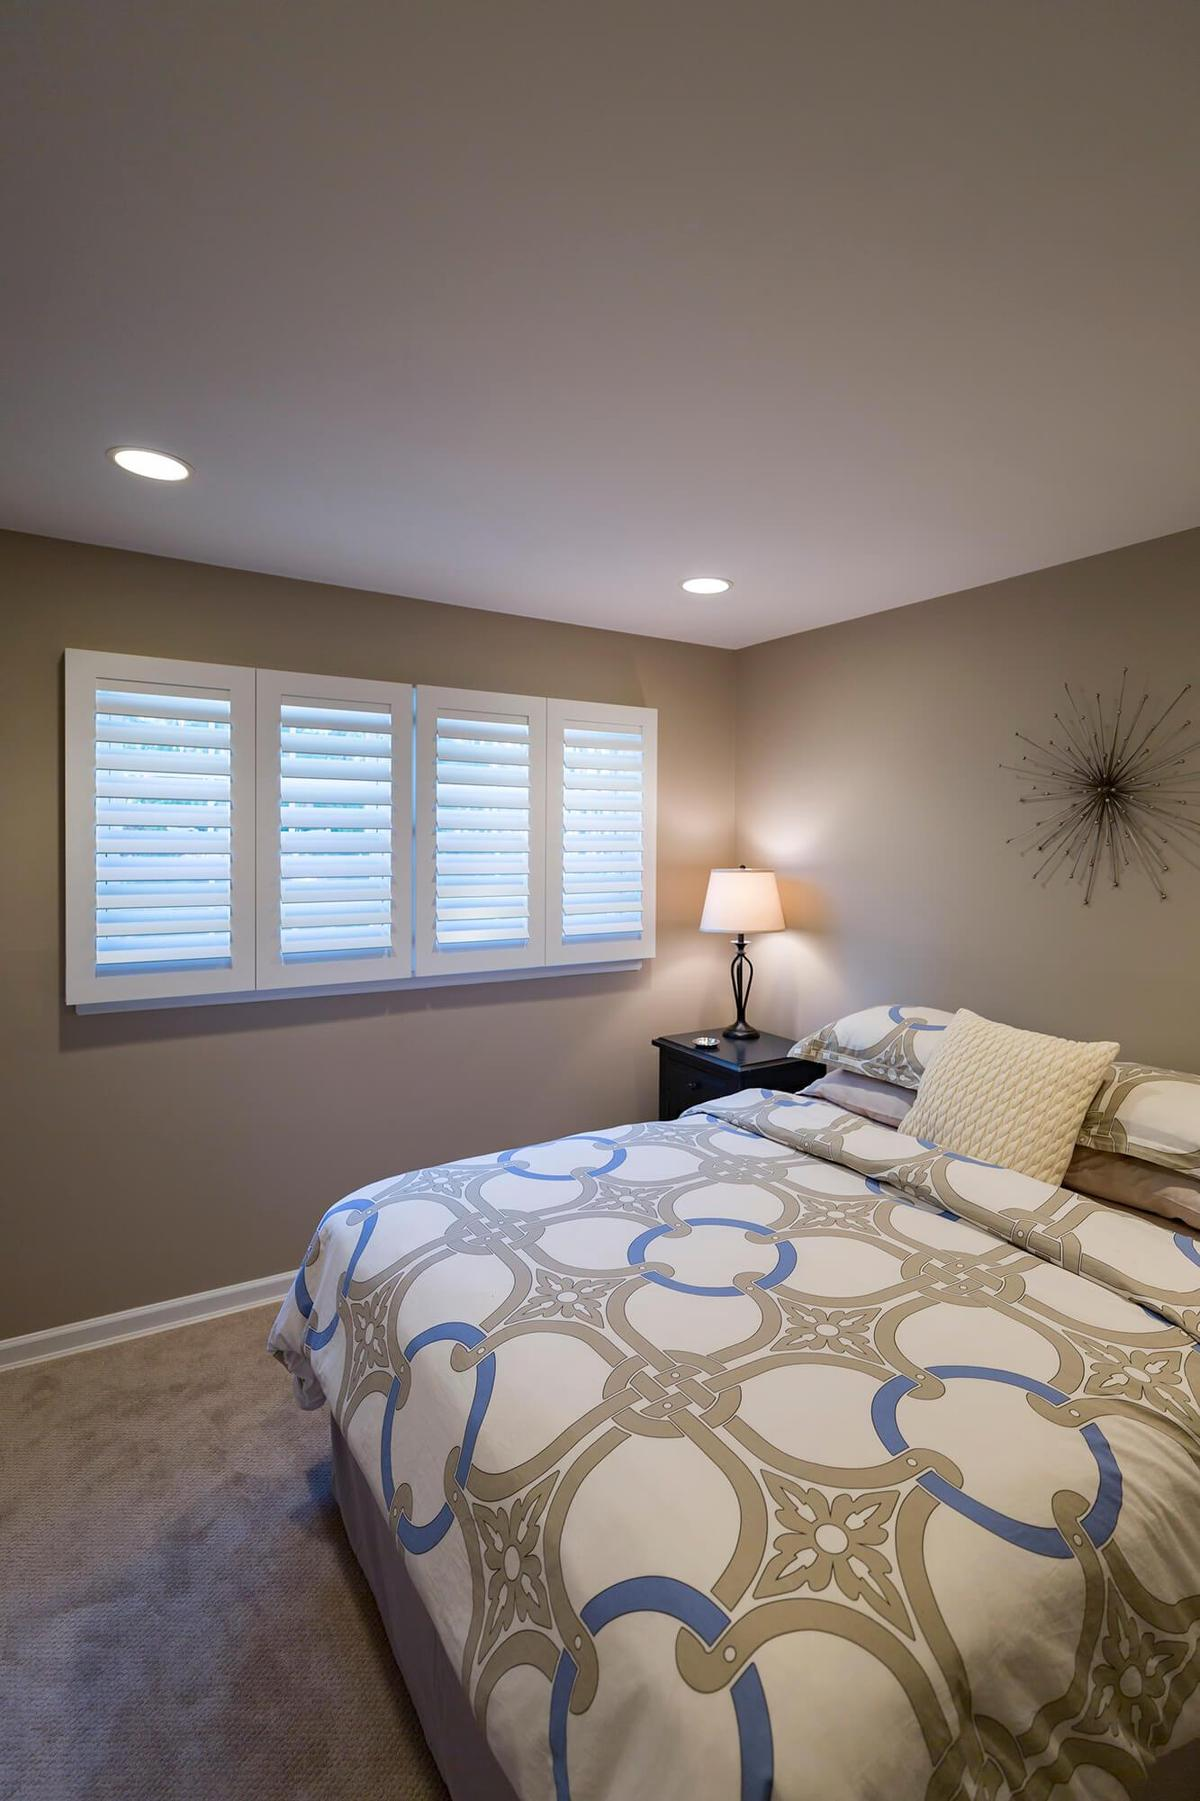 Morview Shutters in a bedroom.